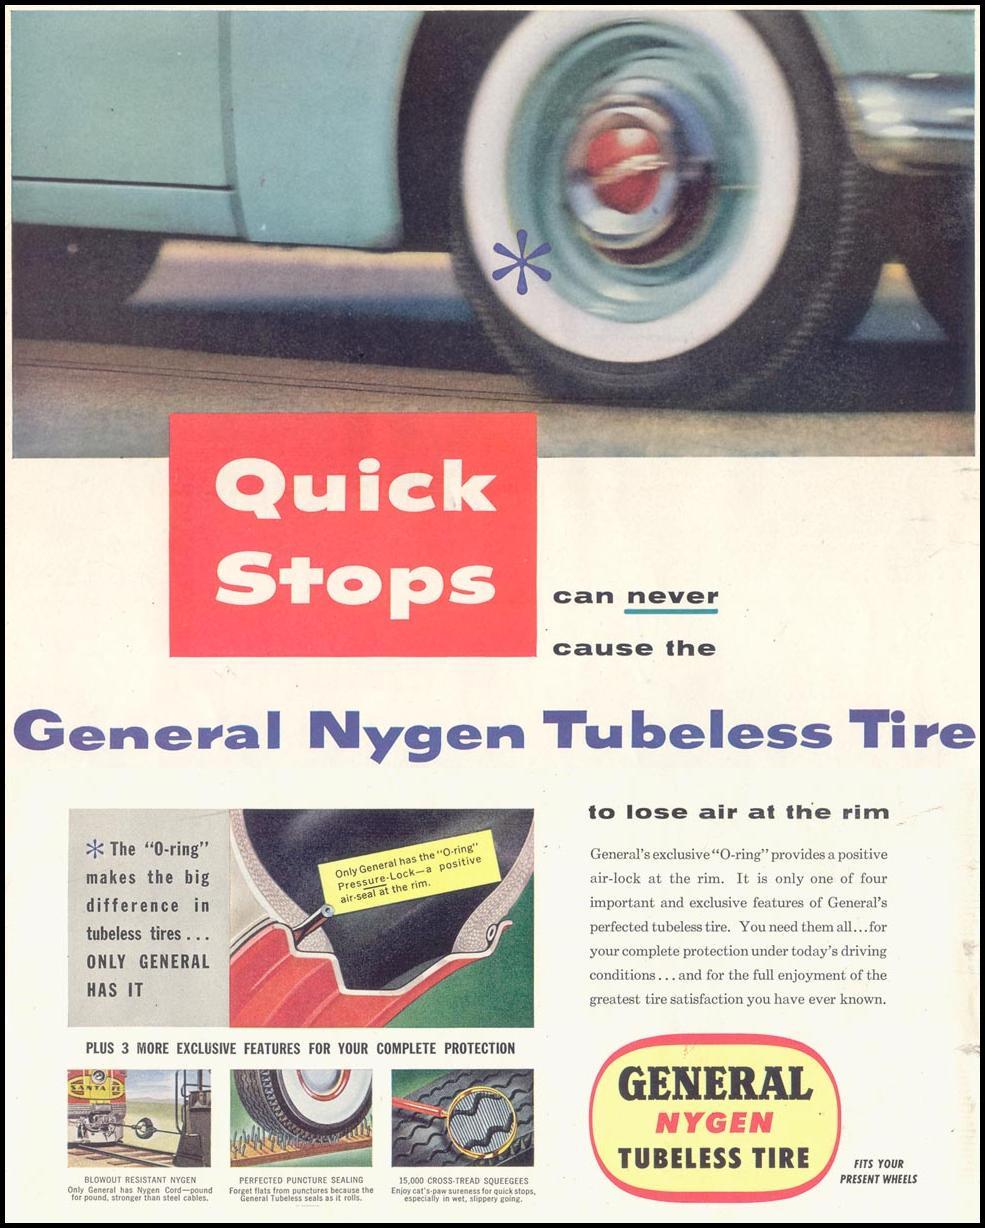 GENERAL NYGEN TUBELESS TIRE SATURDAY EVENING POST 03/26/1955 p. 18